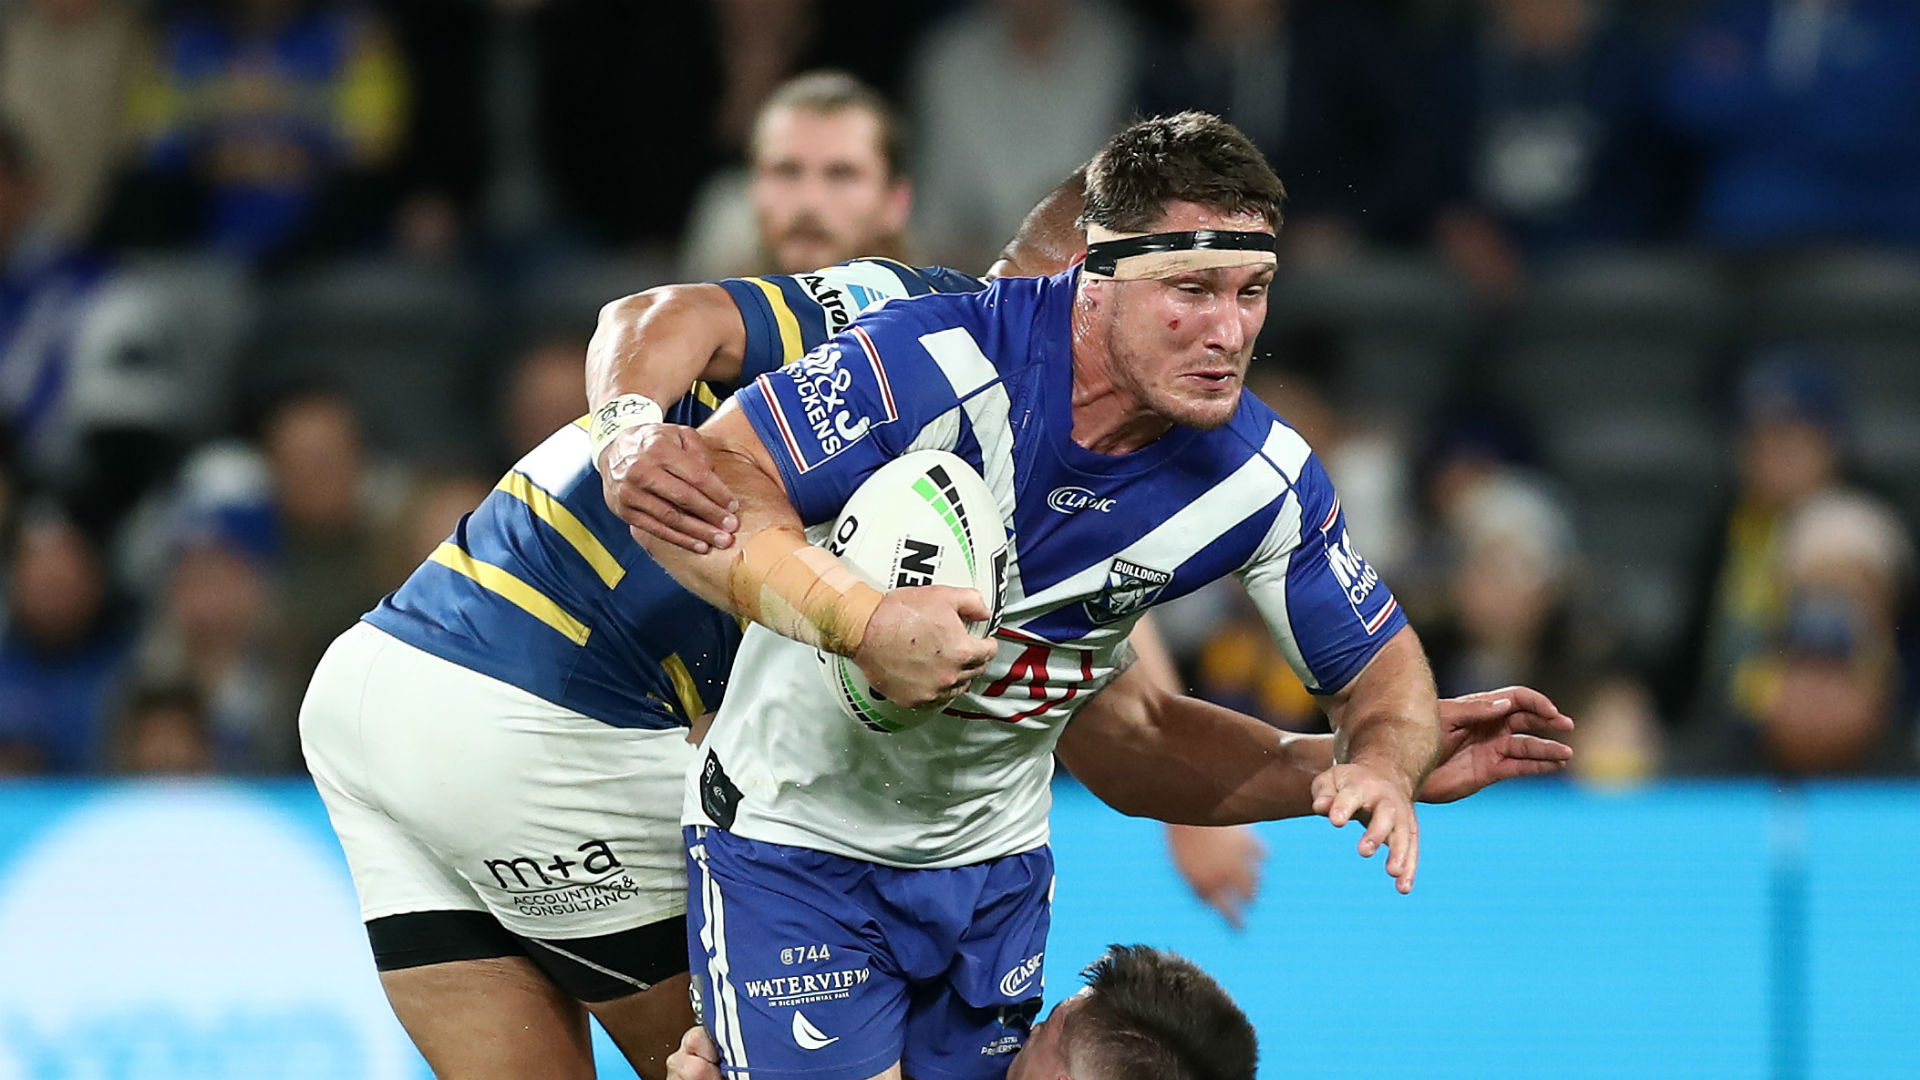 Canterbury Bulldogs stopped Parramatta Eels moving into the top four and booking their place in the NRL finals on Thursday.